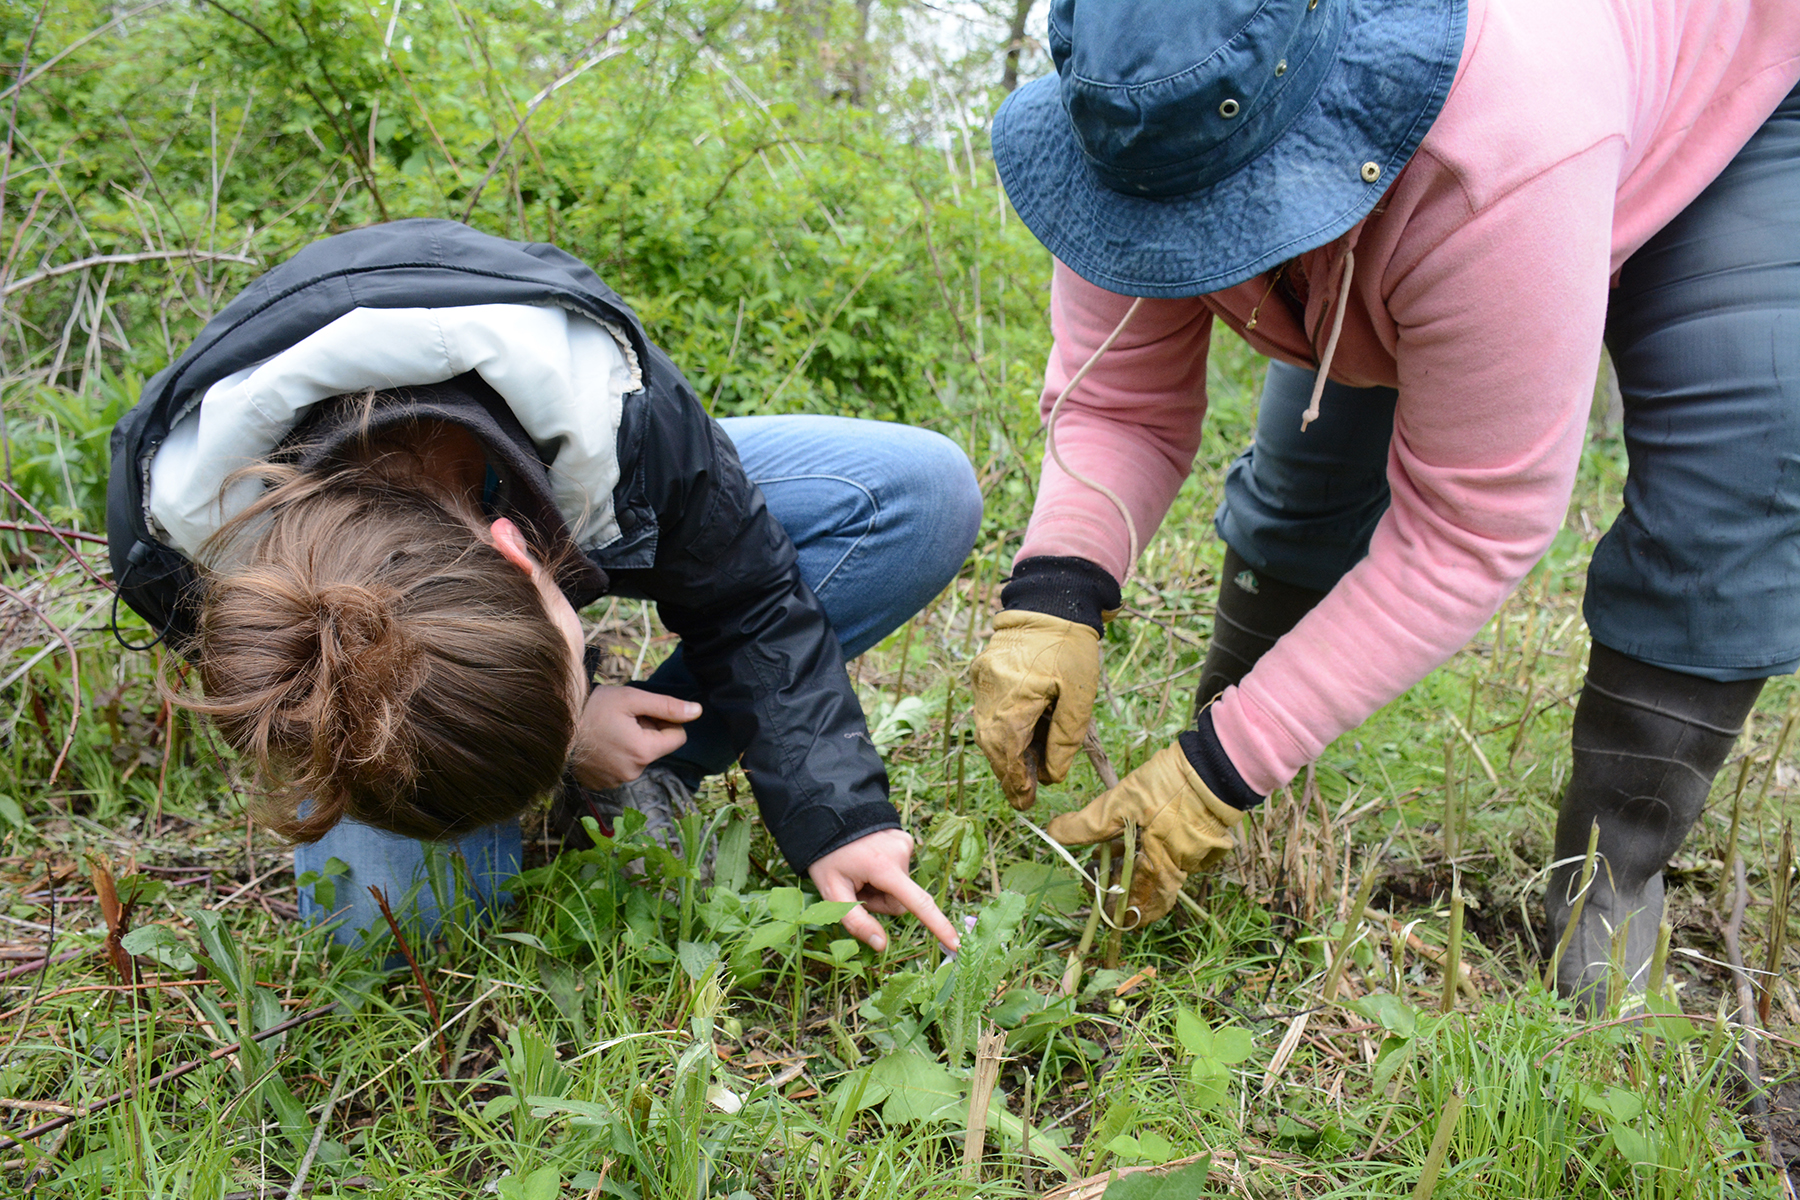 Volunteers Krysta Koralesky and Shelly Armstrong inspect an orchid along a path at Muehllehner Addition - Barneveld Prairie, Wis. May 14, 2016.